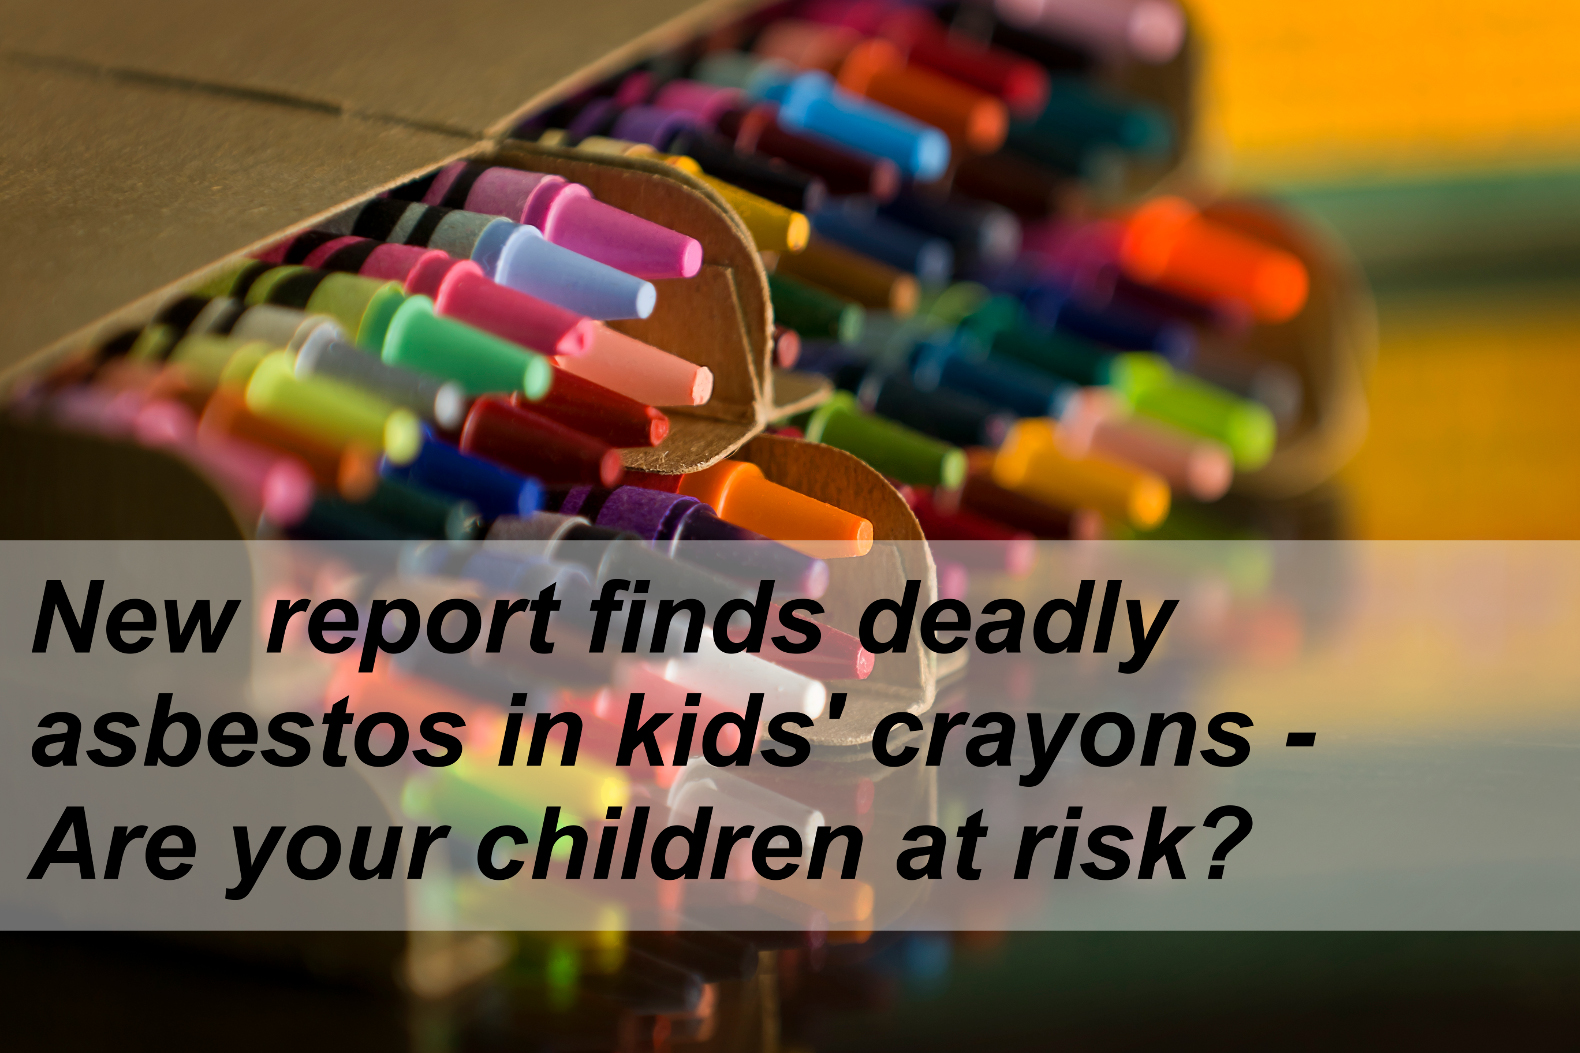 Locally Bought Crayons Tests Positive for Asbestos